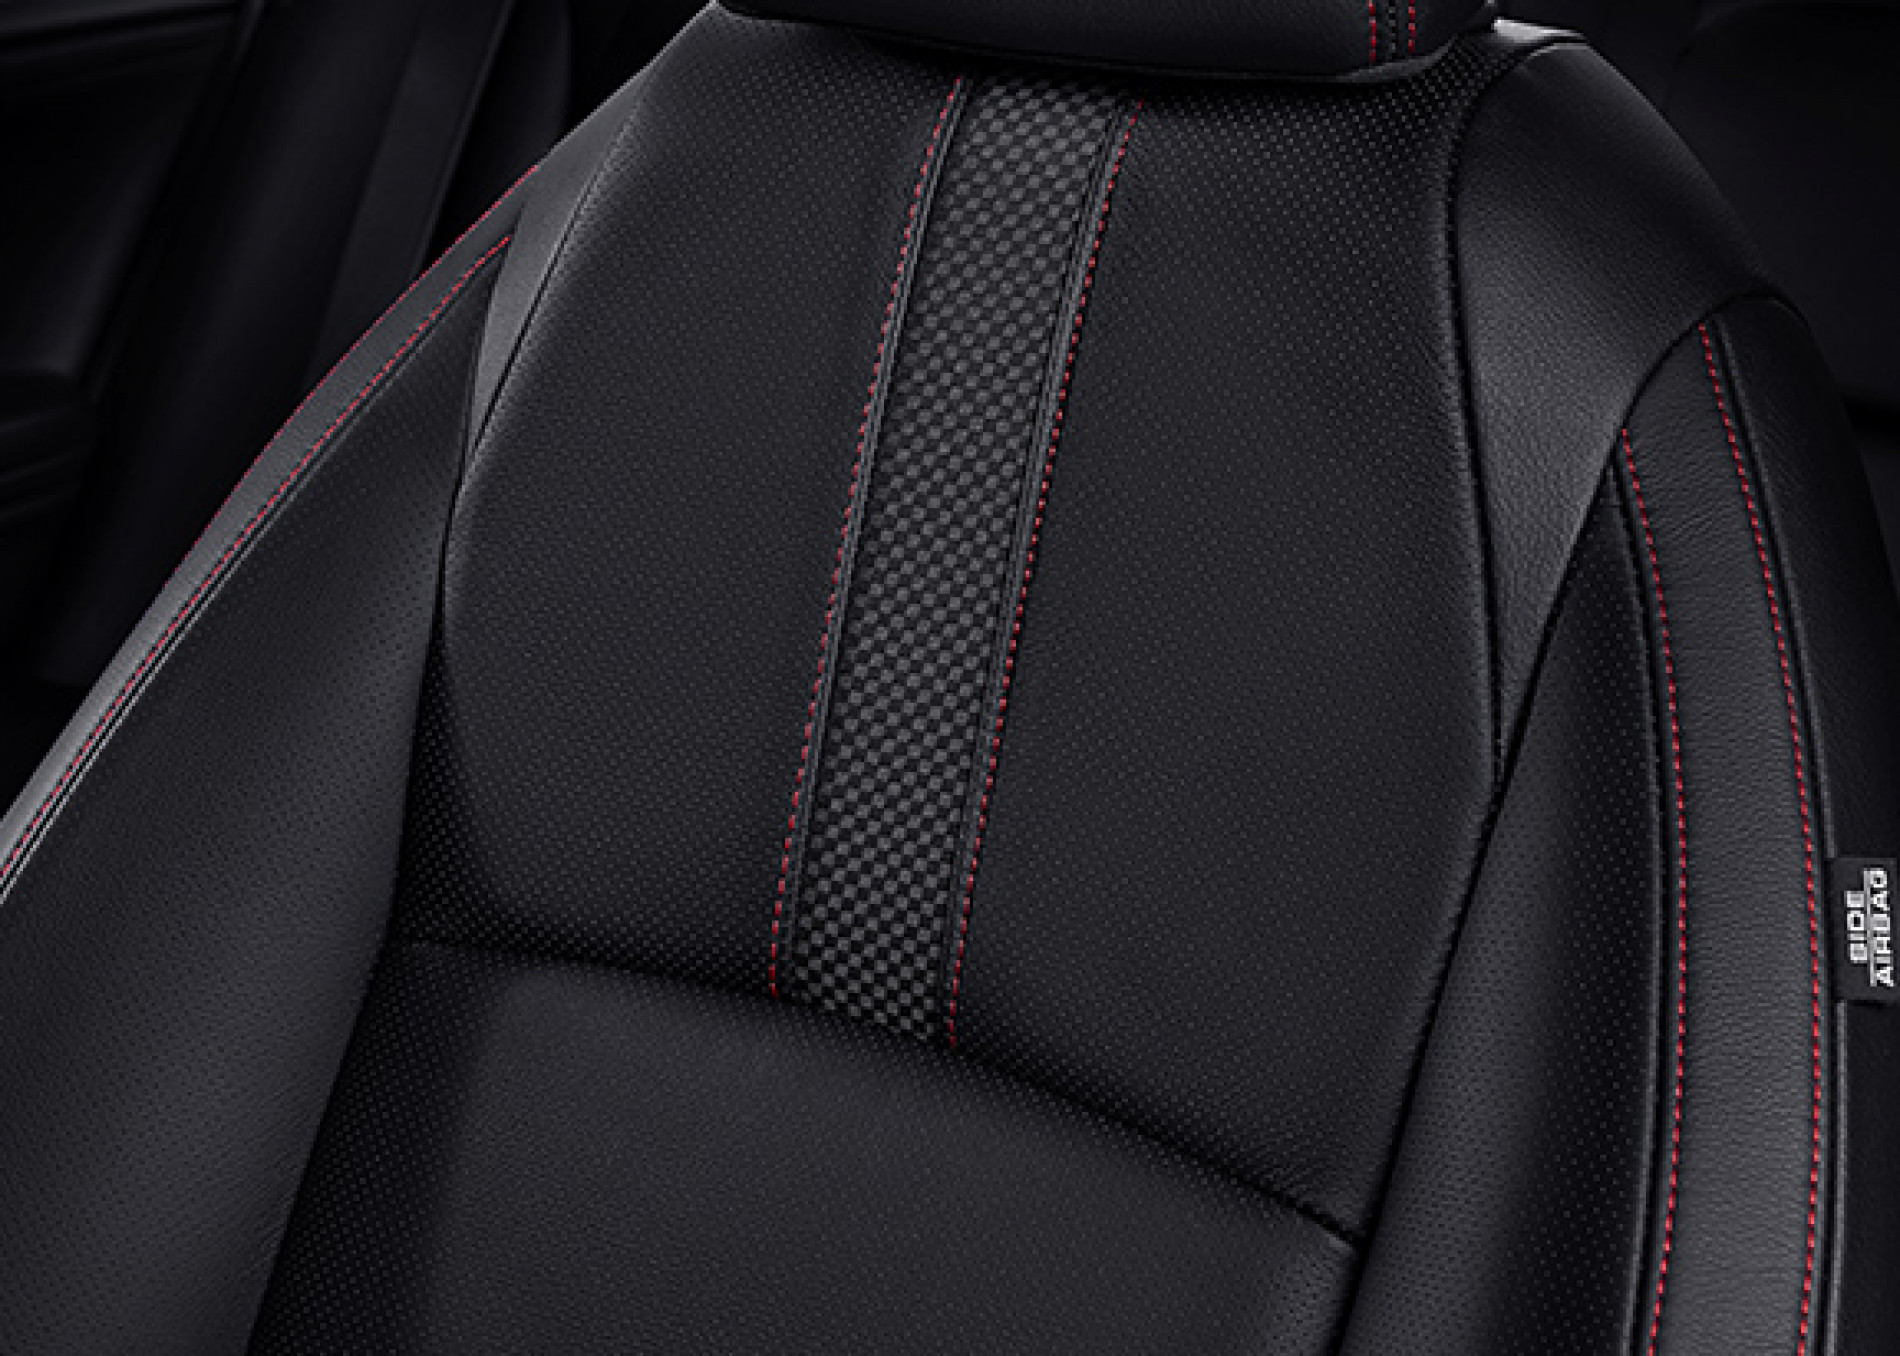 NEW-LEATHER-TRIMMED-SEAT-WITH-RED-STITCHES